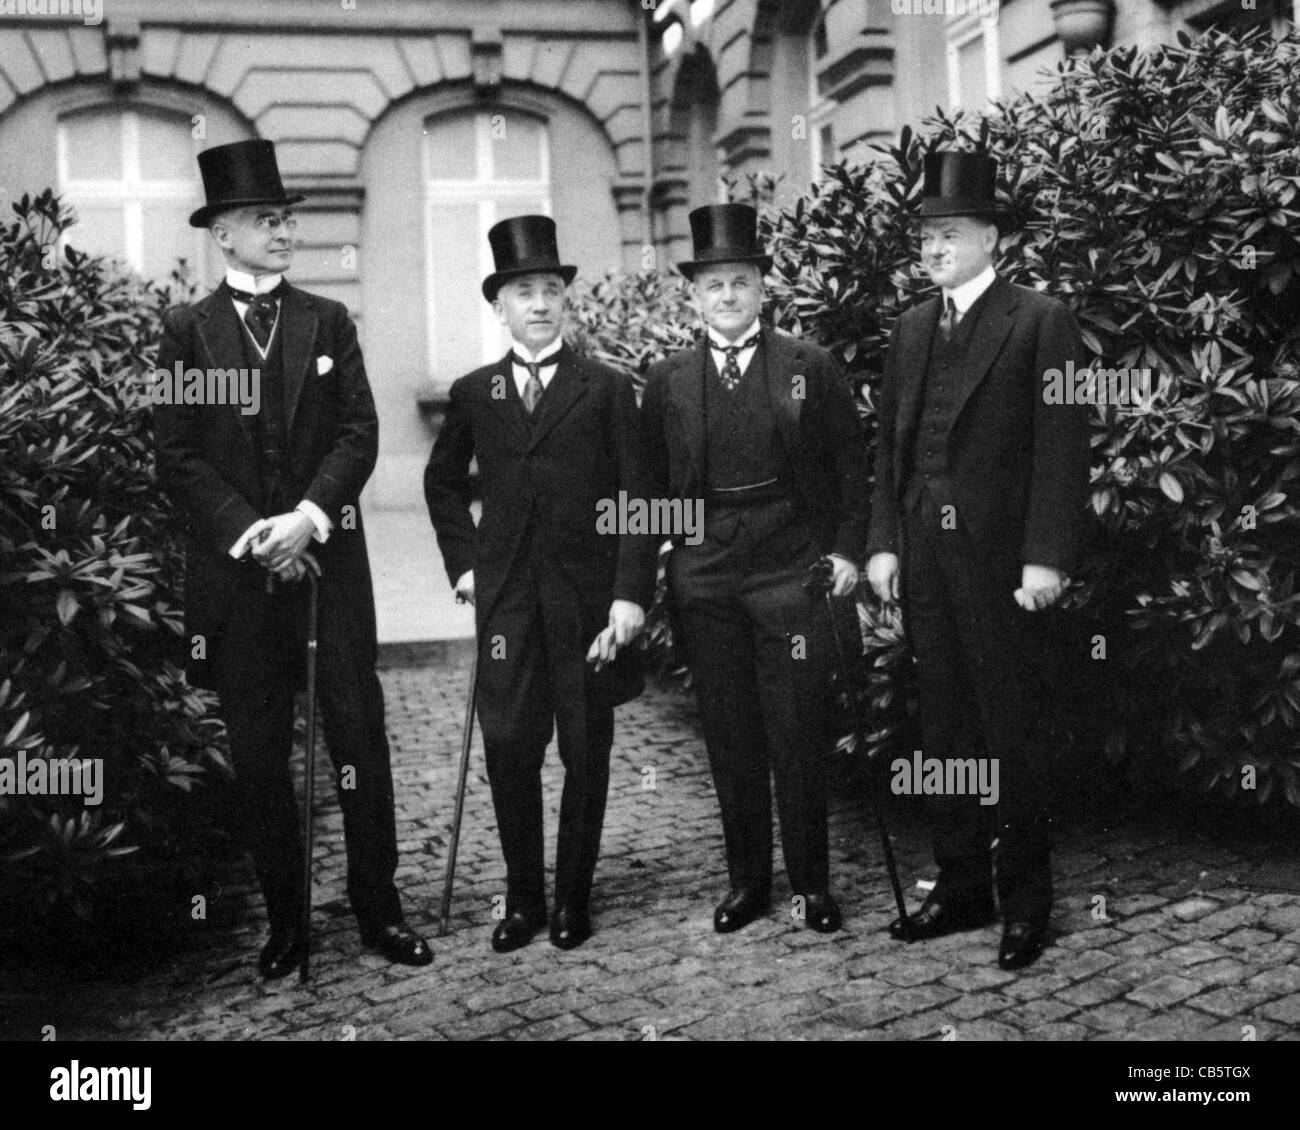 AMERICAN DELEGATION AT 1919 PEACE CONFERENCE from l: Bernard Baruch, Norman H. Davis, Vance McCormick, Herbert Hoover - Stock Image